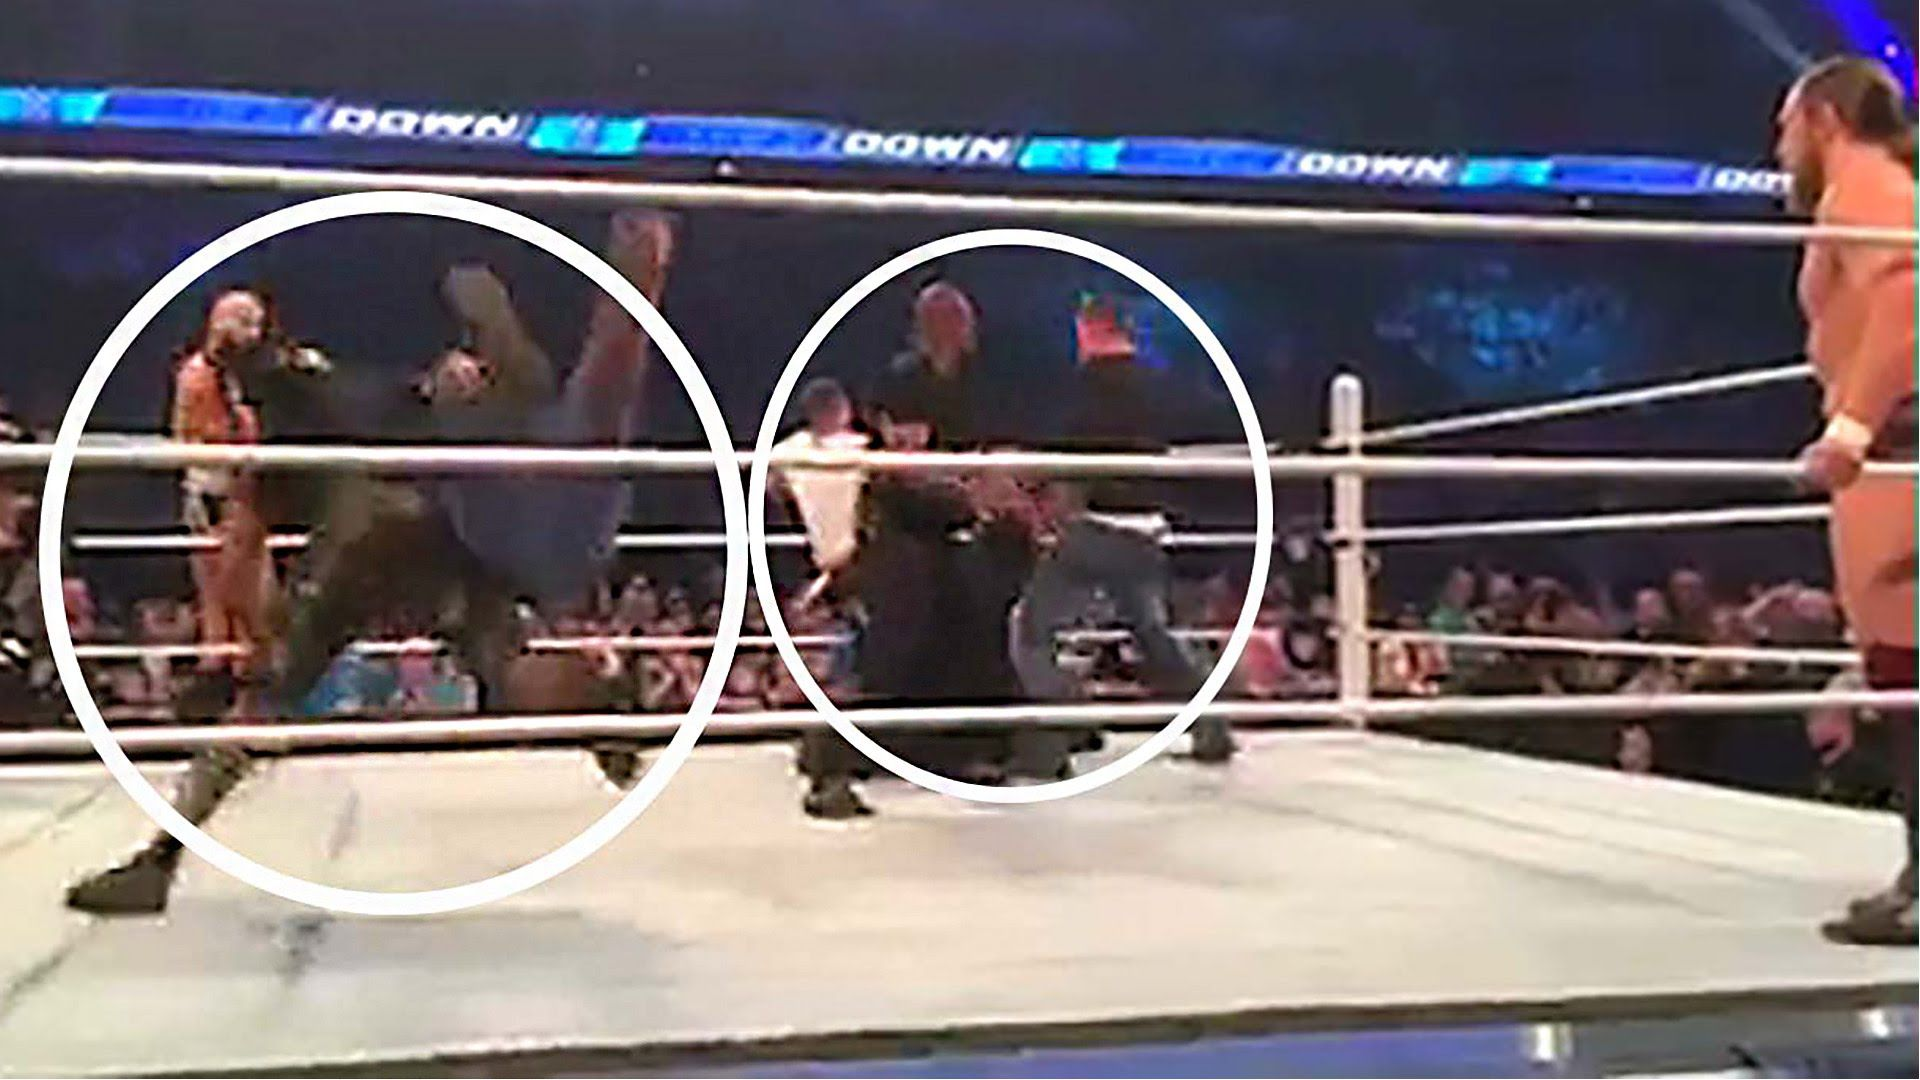 Top 10 Altercations Between Wrestlers and Fans Caught on Video